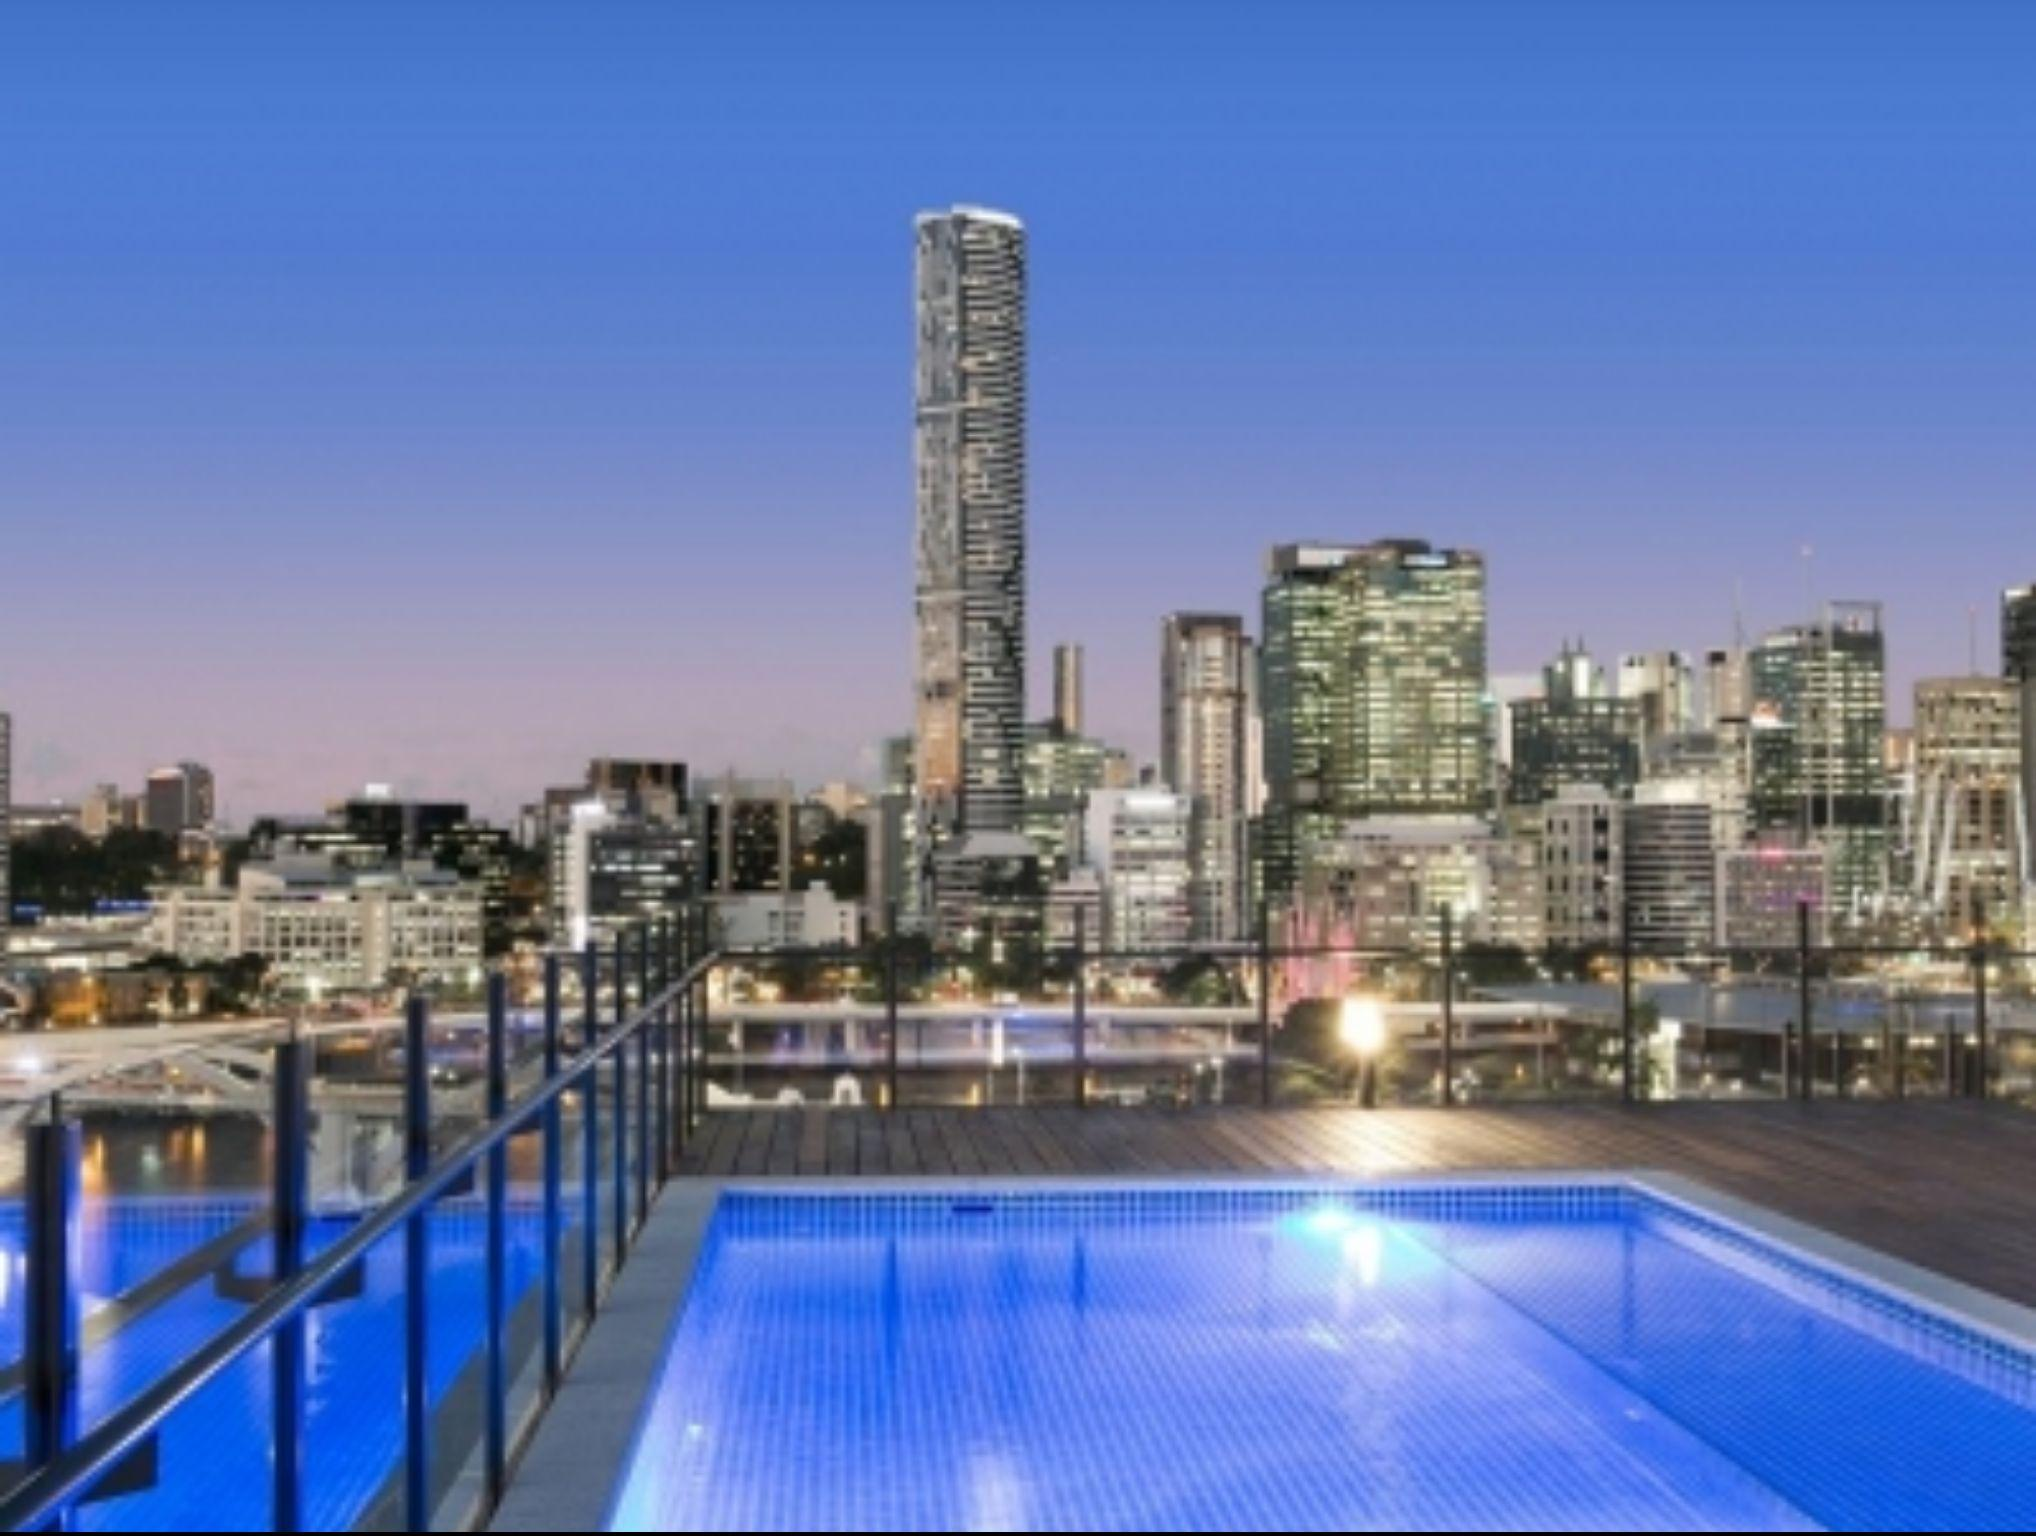 2 Bedroom Apartment Brisbane Book Spice Apartments South Brisbane Australia 2019 Prices